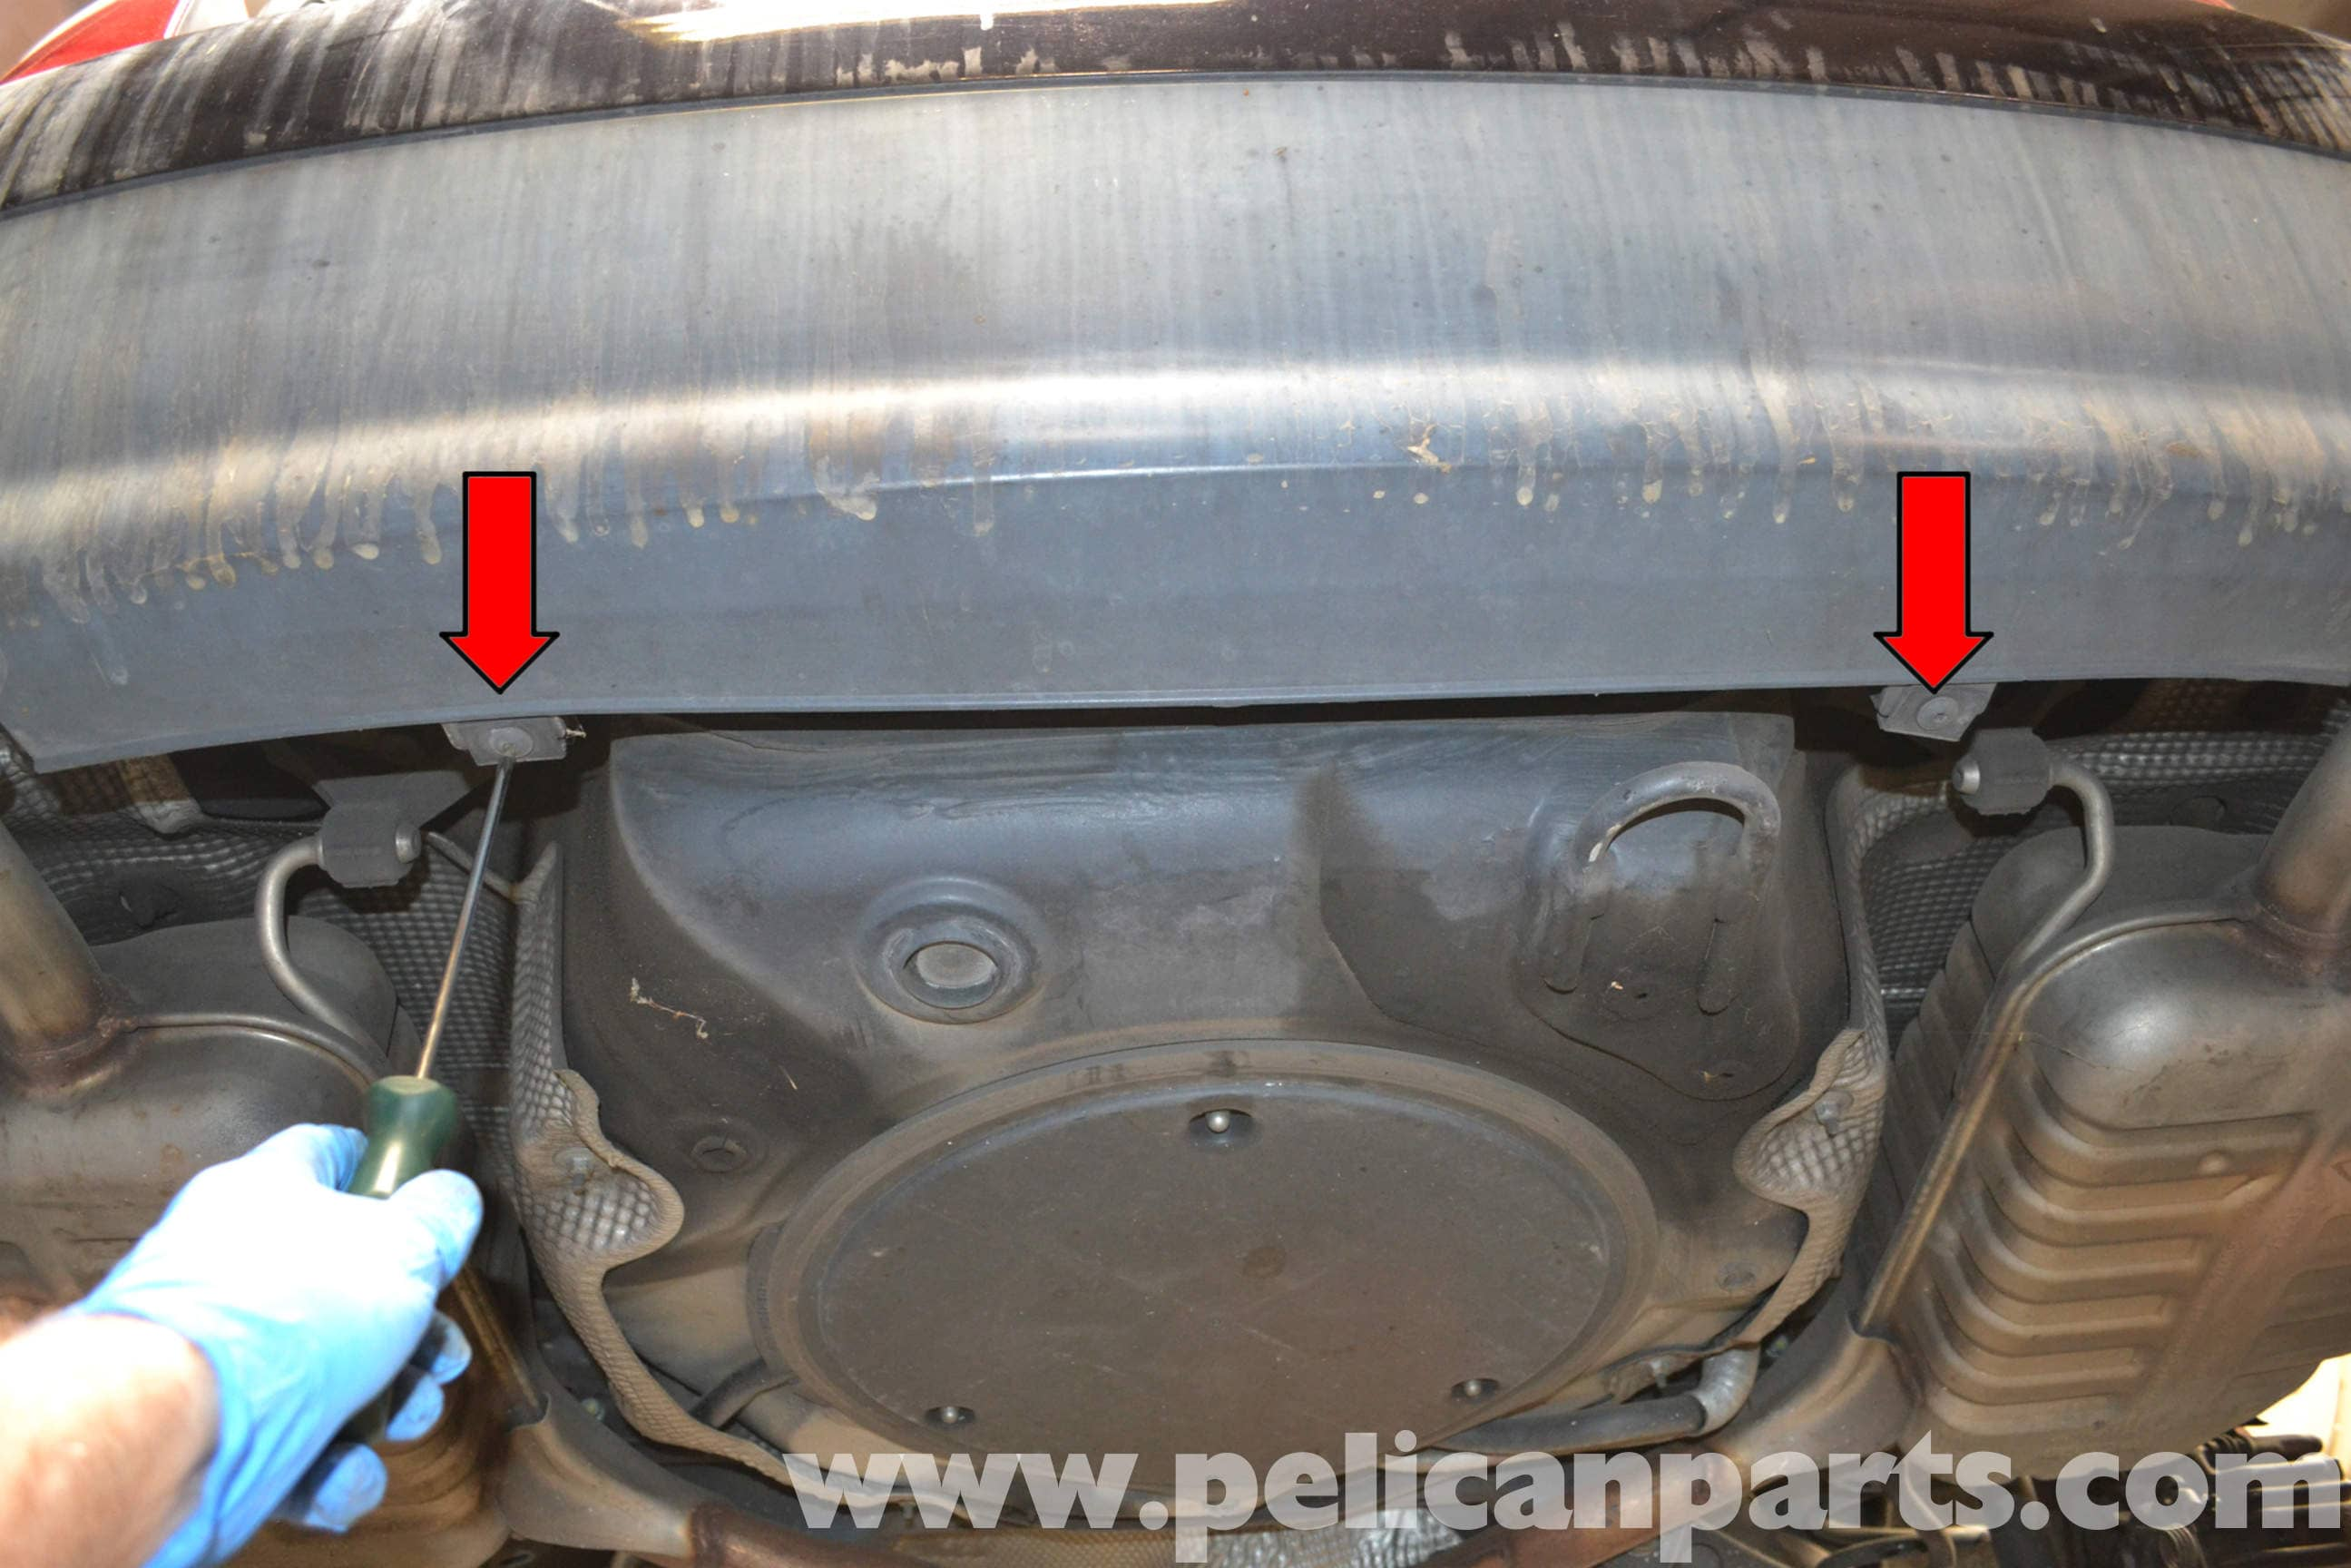 Audi a4 b6 front bumper removal